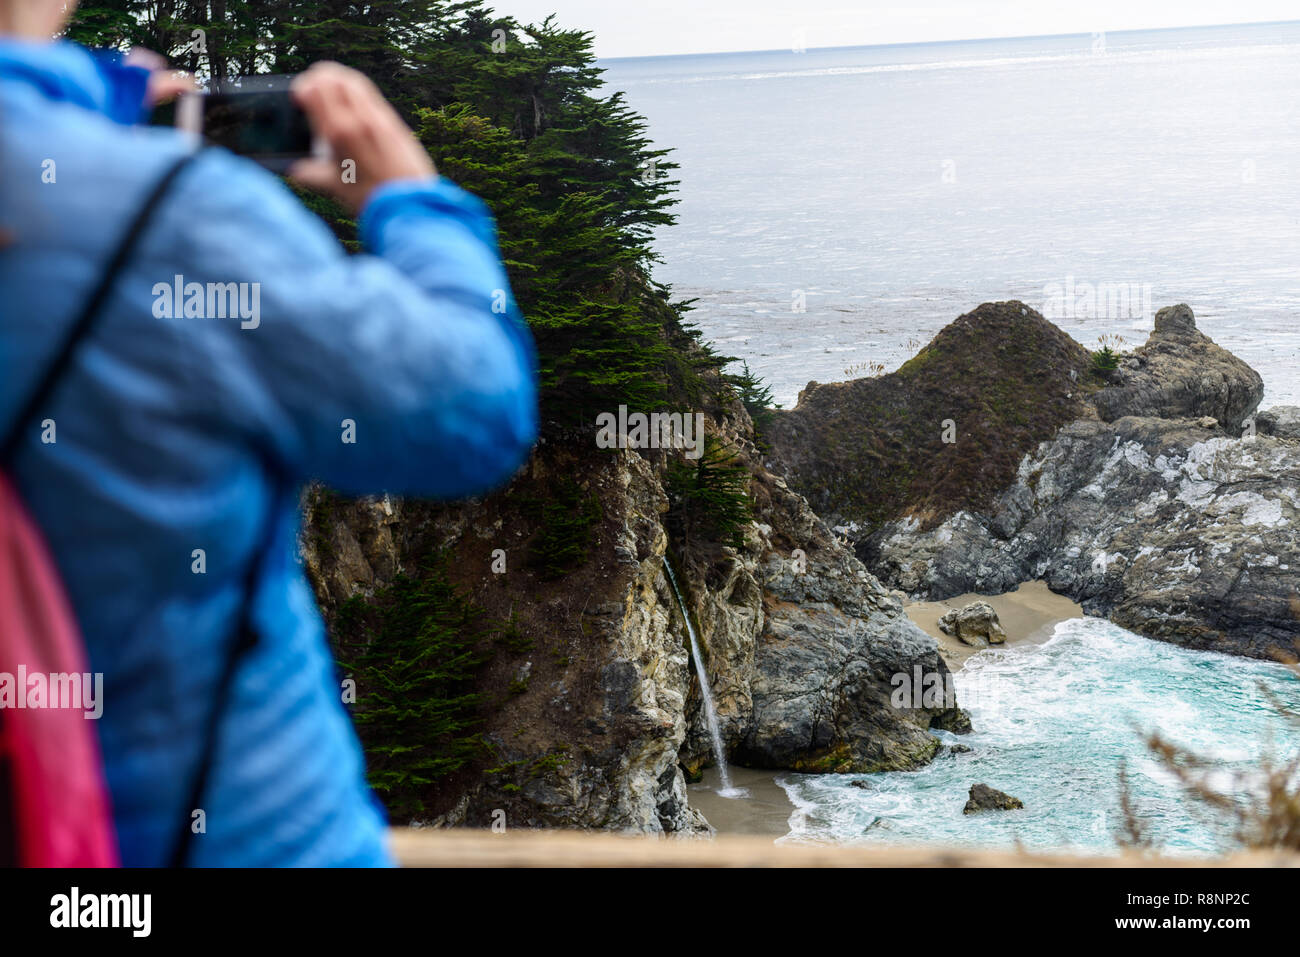 A tourist take a picture of the McWay Falls cove - Stock Image